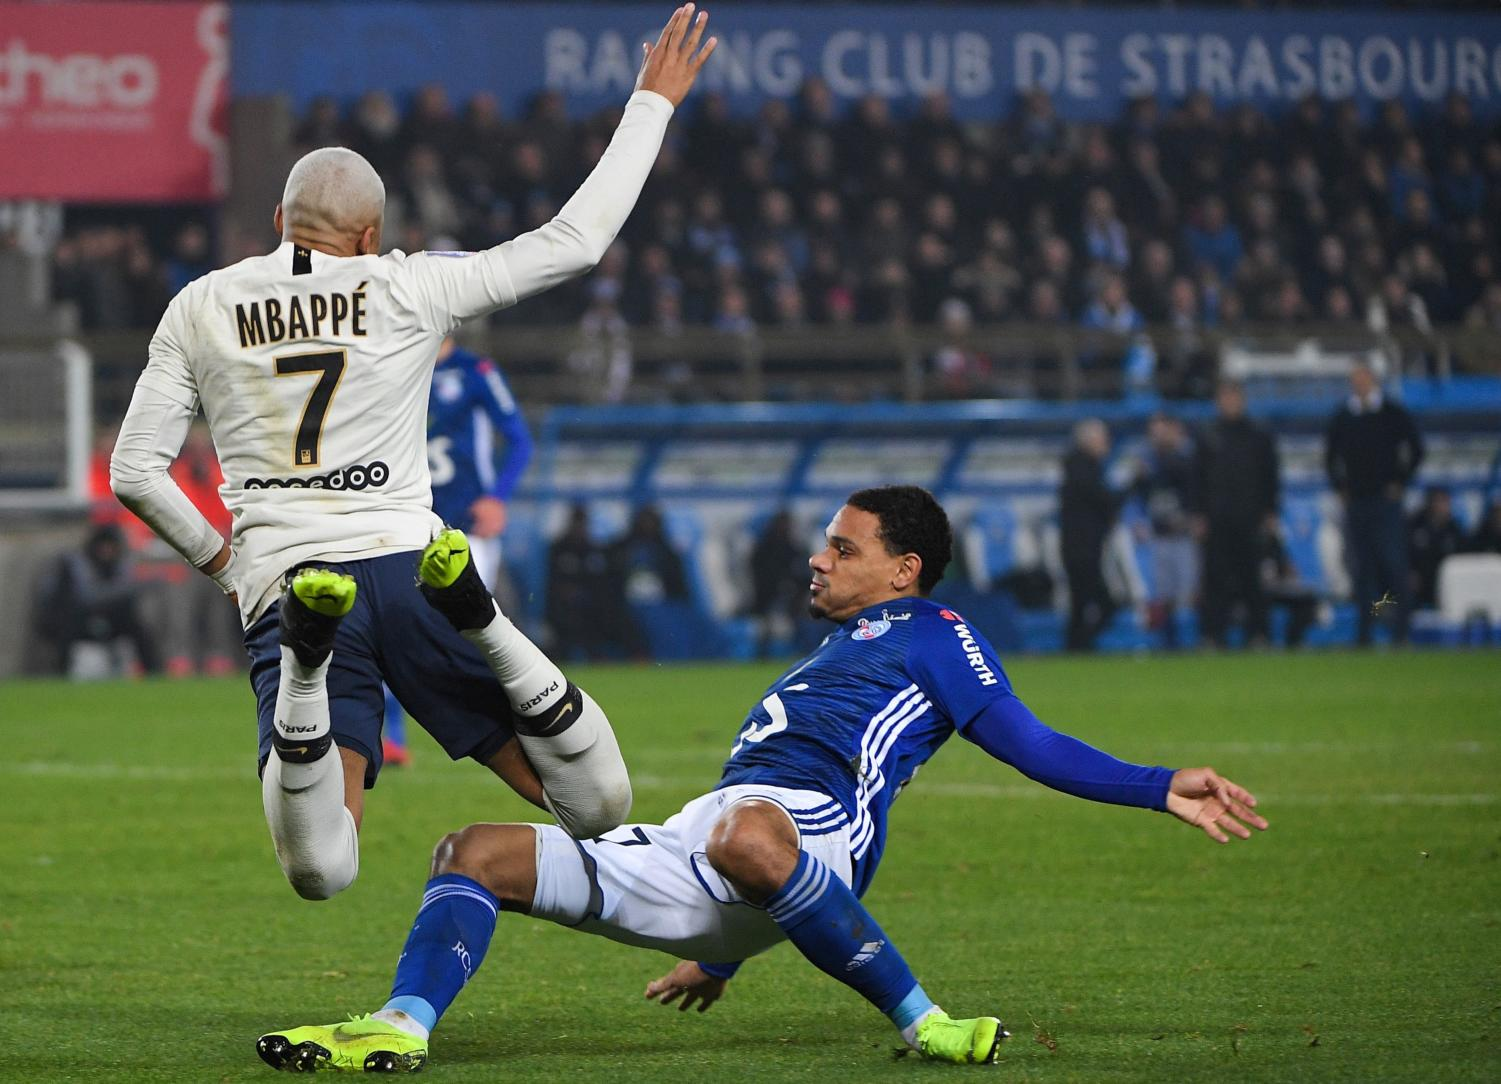 Paris Saint-Germain's French forward Kylian Mbappe (L) falls on the football as he vies for the ball with Strasbourg's French defender Kenny Lala (R)